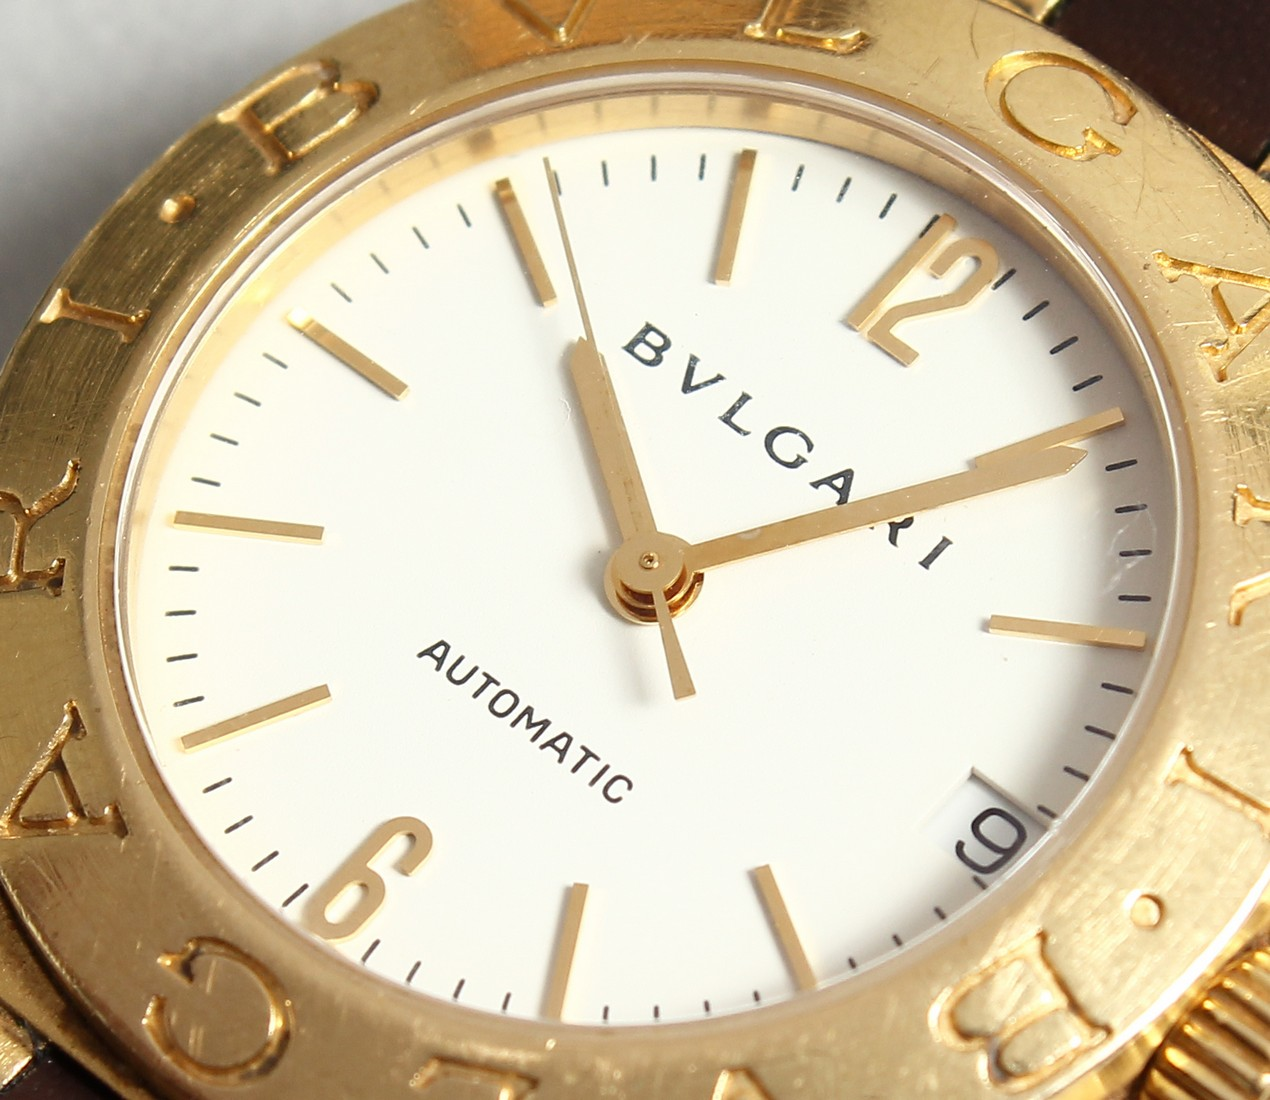 AN 18CT. GOLD BULGARI WRIST WATCH with leather strap, in original box. - Image 2 of 10